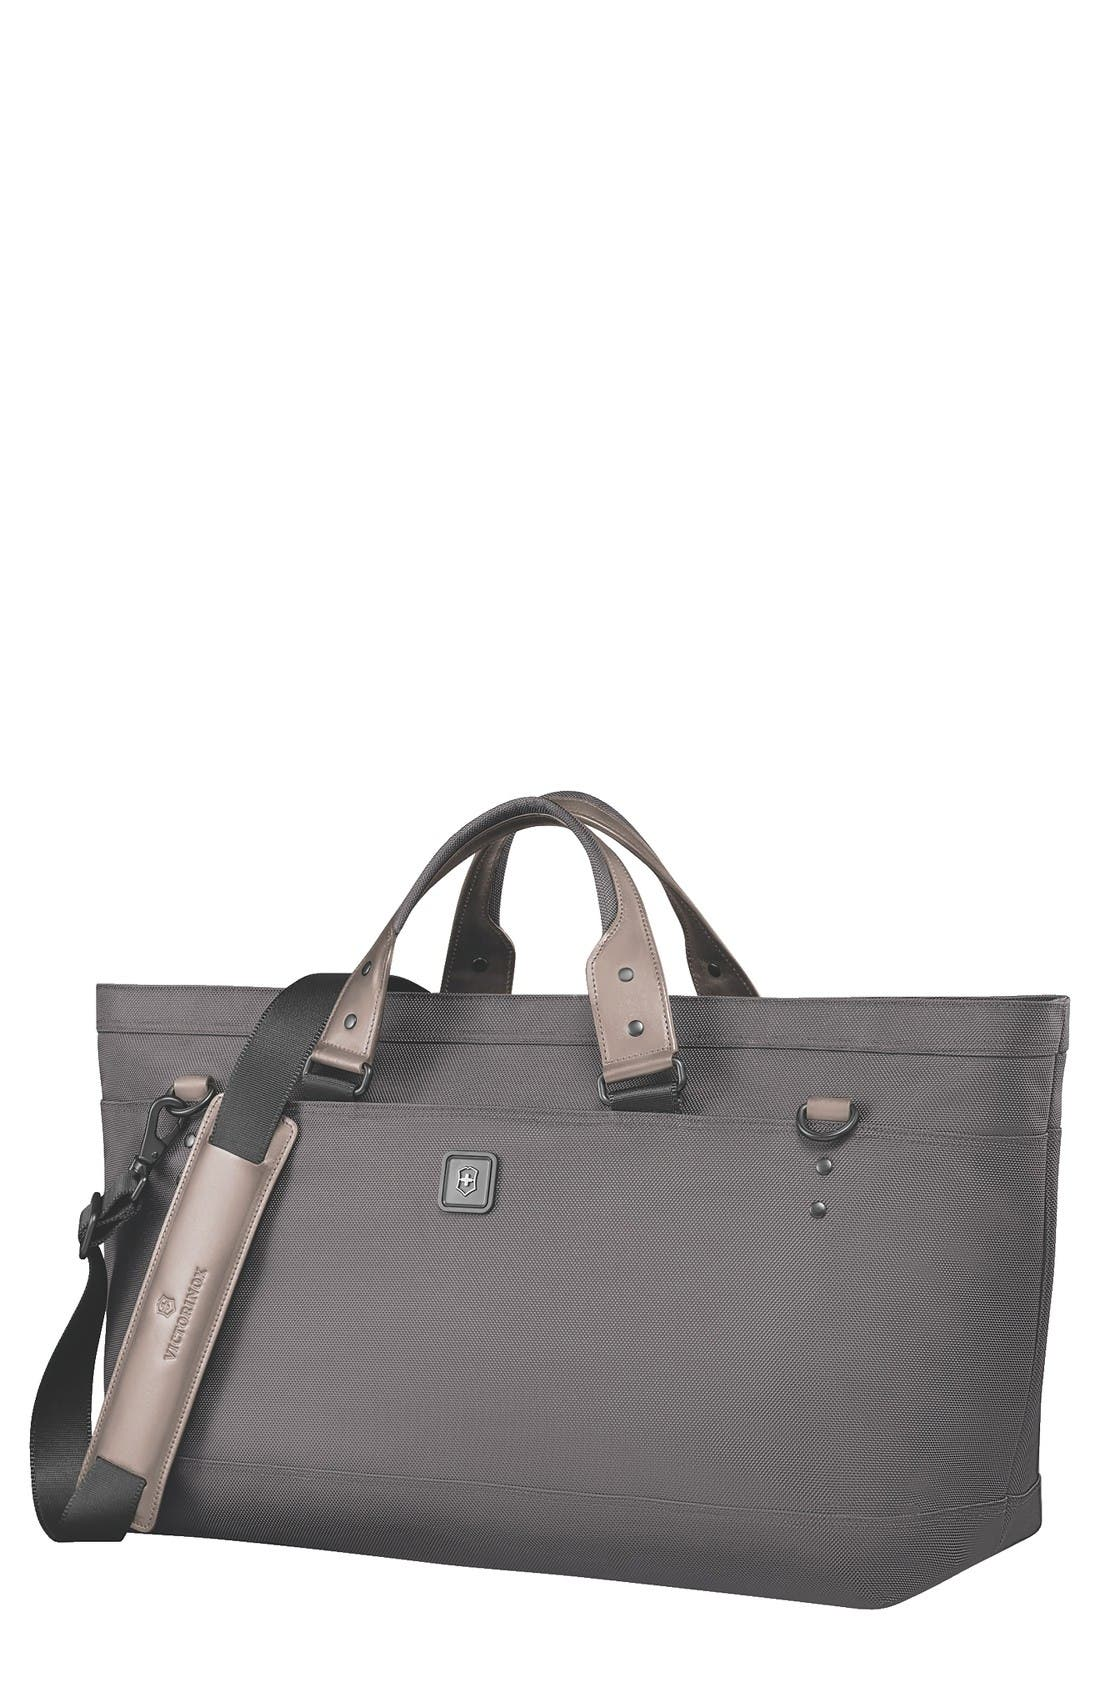 Victorinox Swiss Army® Lexicon 2.0 Deluxe Tote Bag